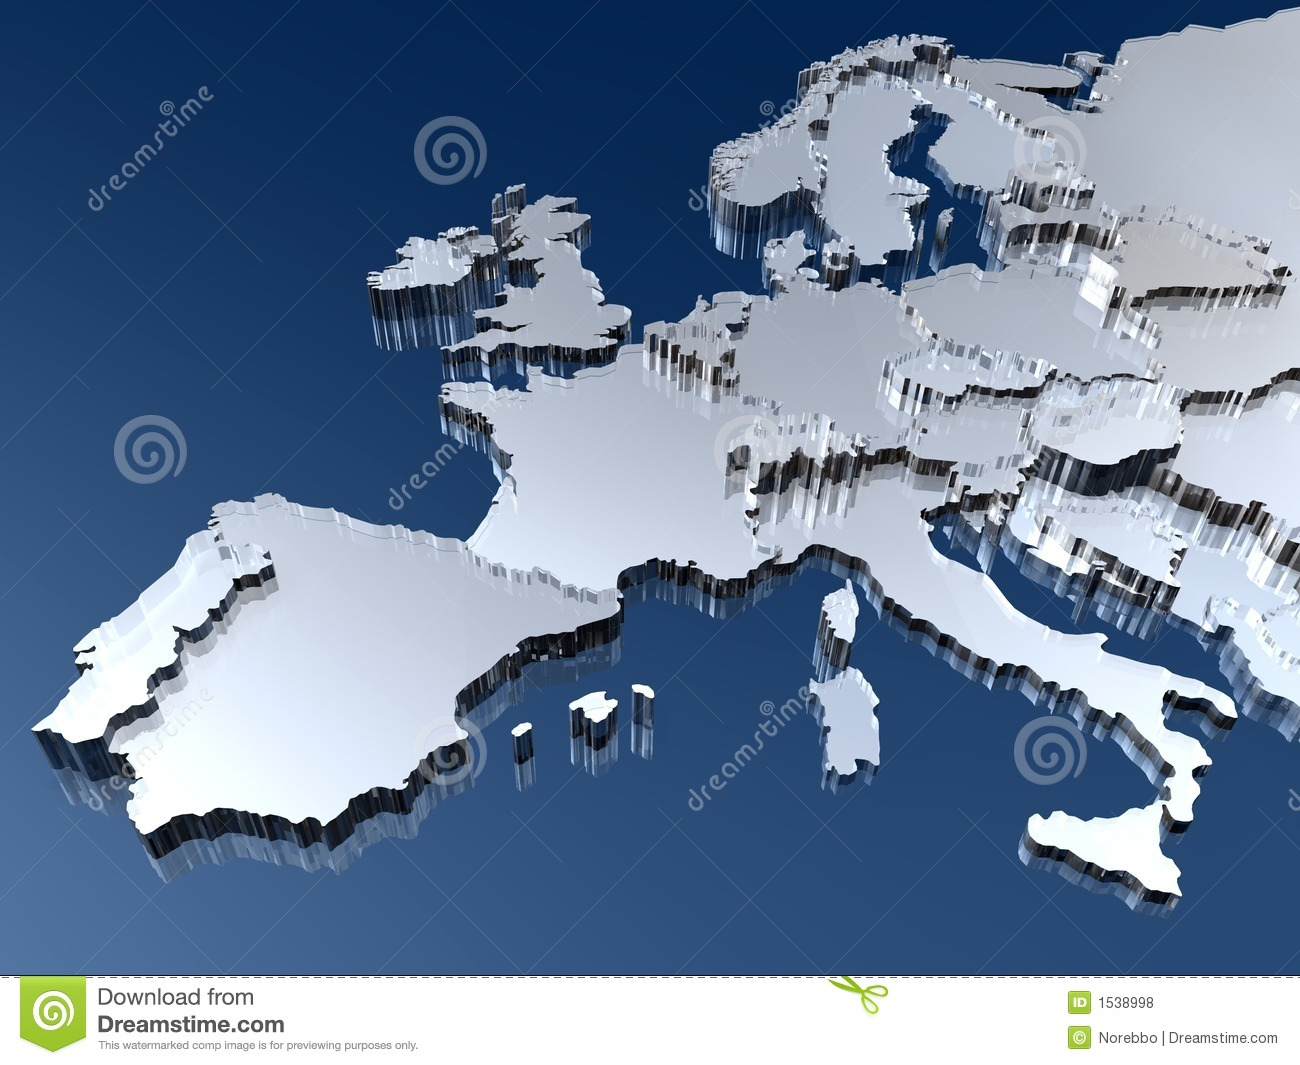 3d Map Of Europe Royalty Free Stock Photos Image 1538998